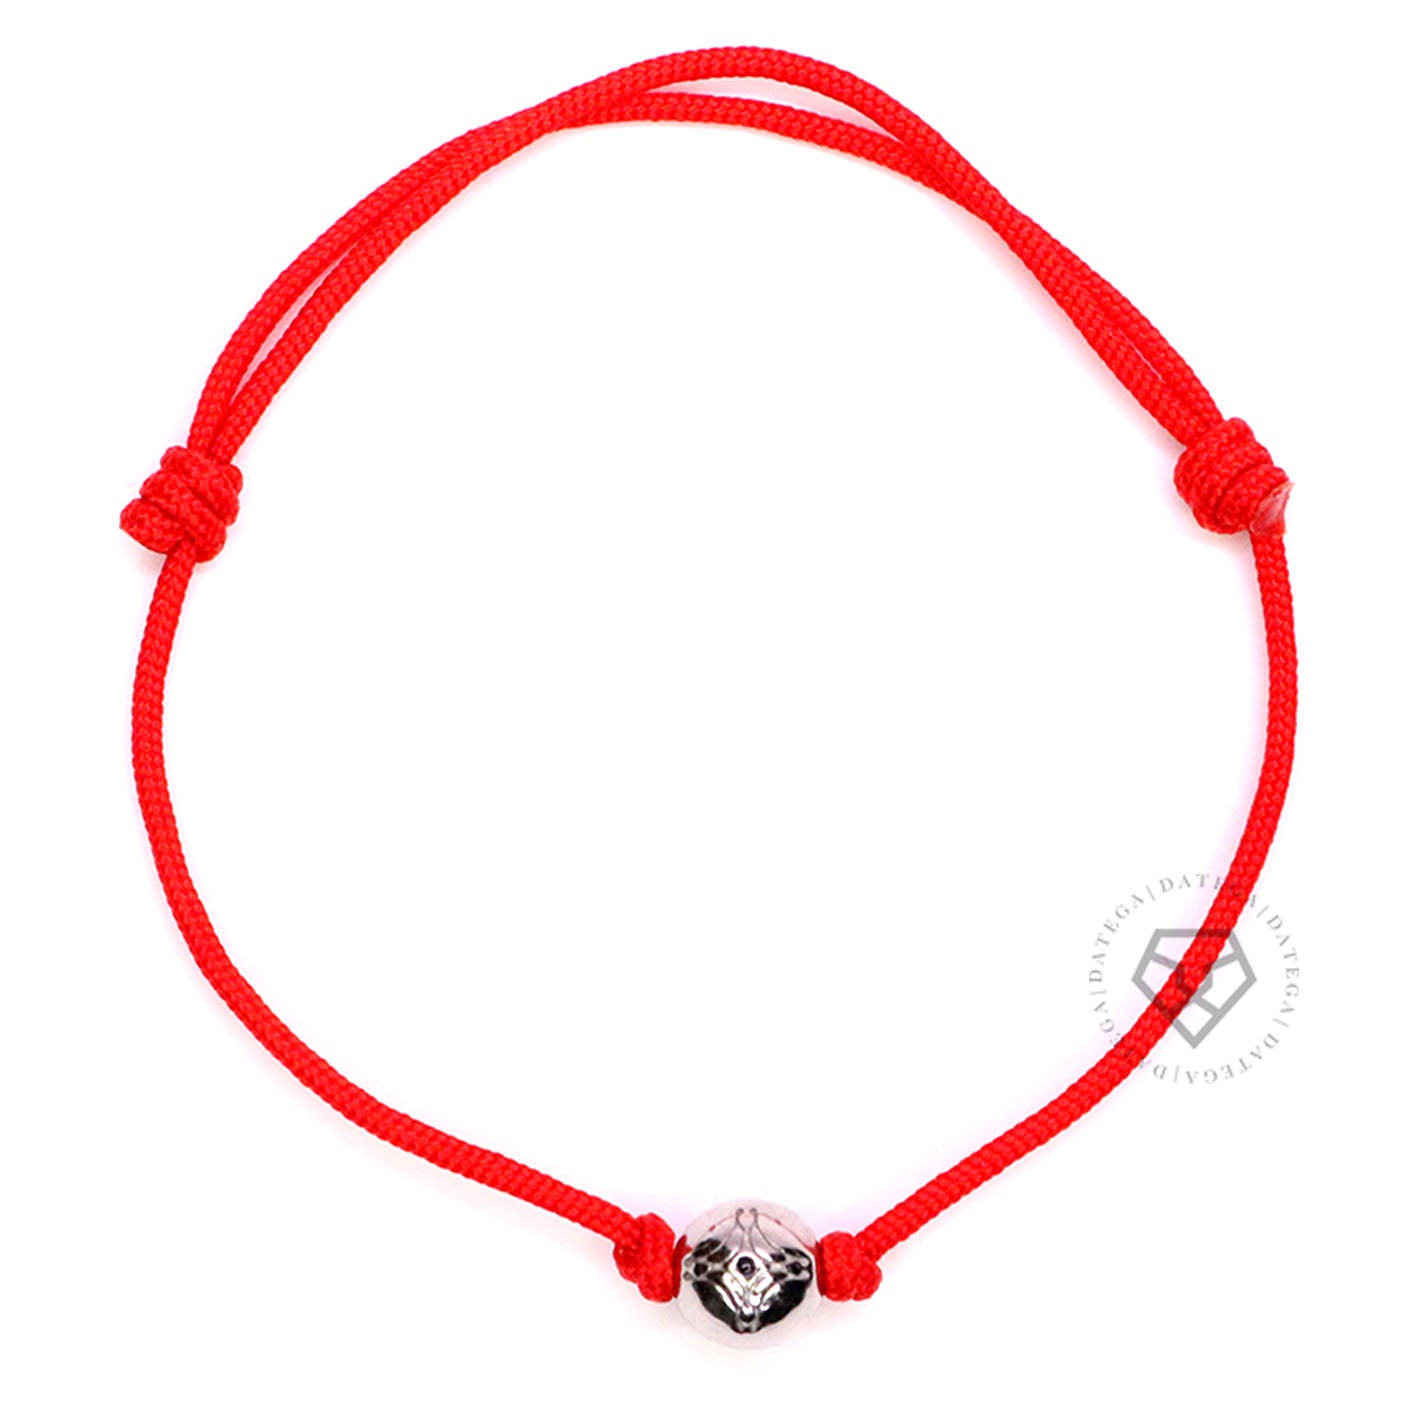 Insignia White Gold - Red Rope